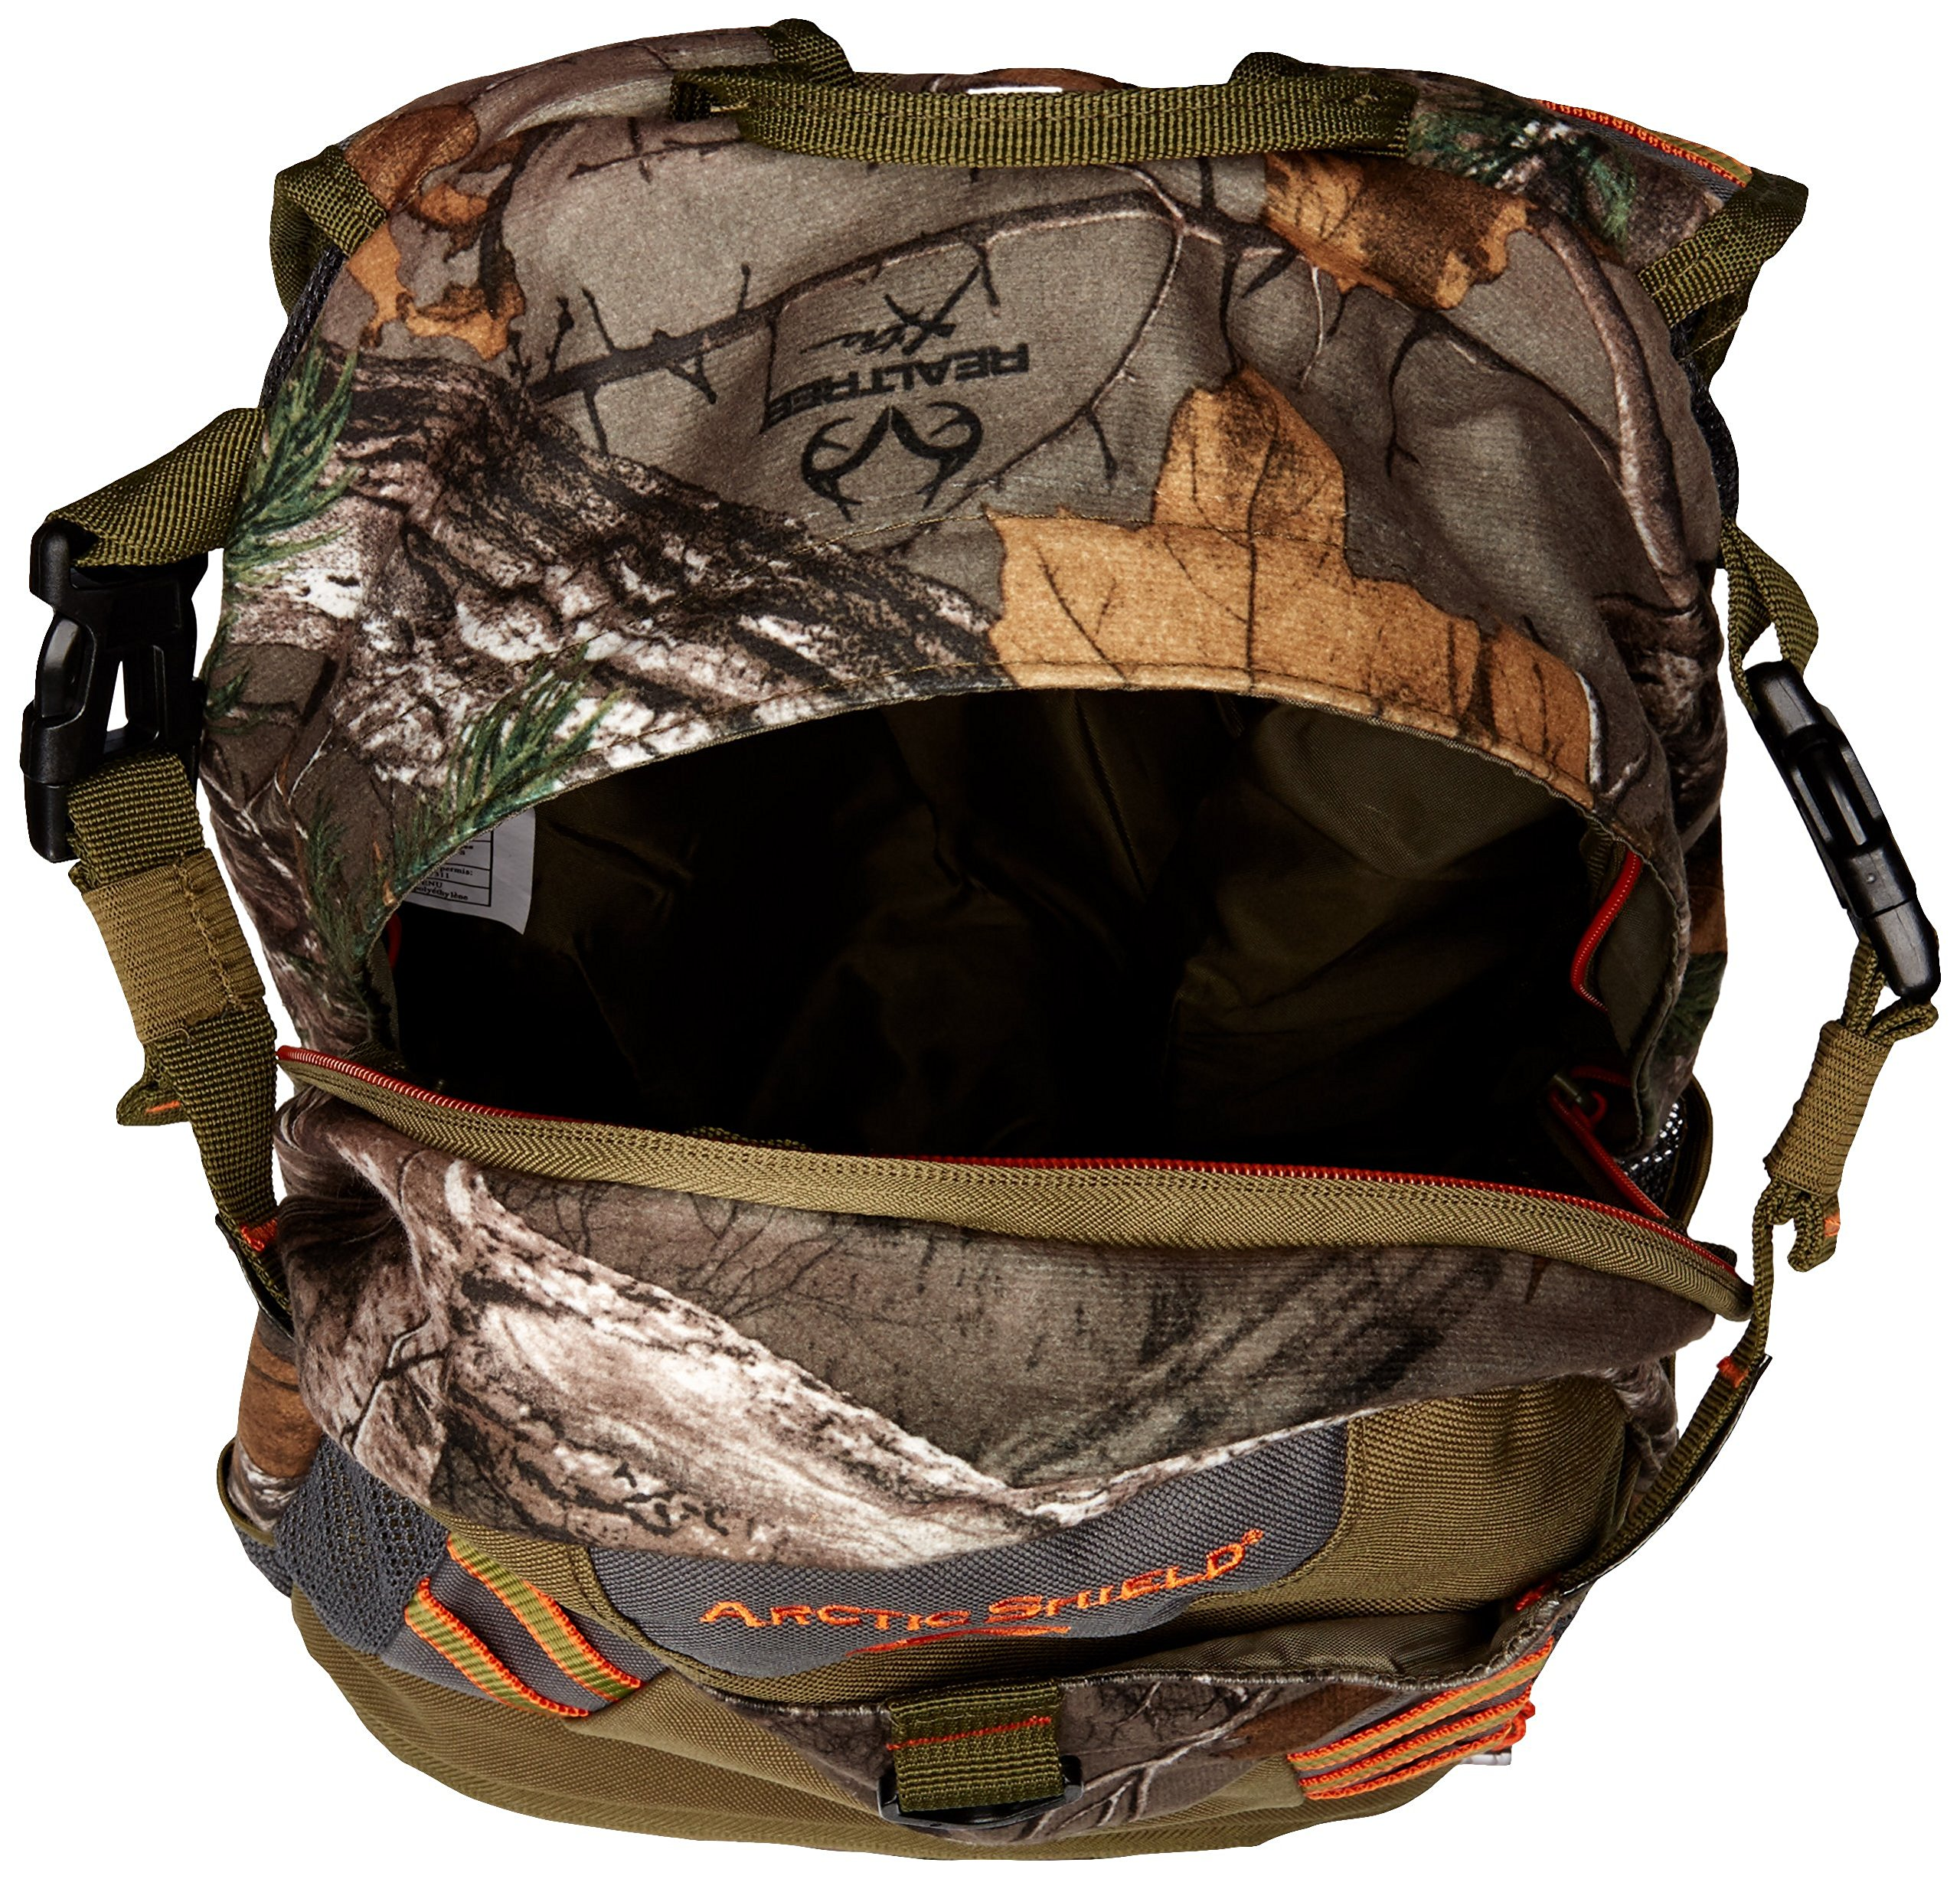 Onyx 561300-802-999-15 Outdoor T3X Realtree Xtra Backpack, Realtree Xtra by Onyx (Image #3)